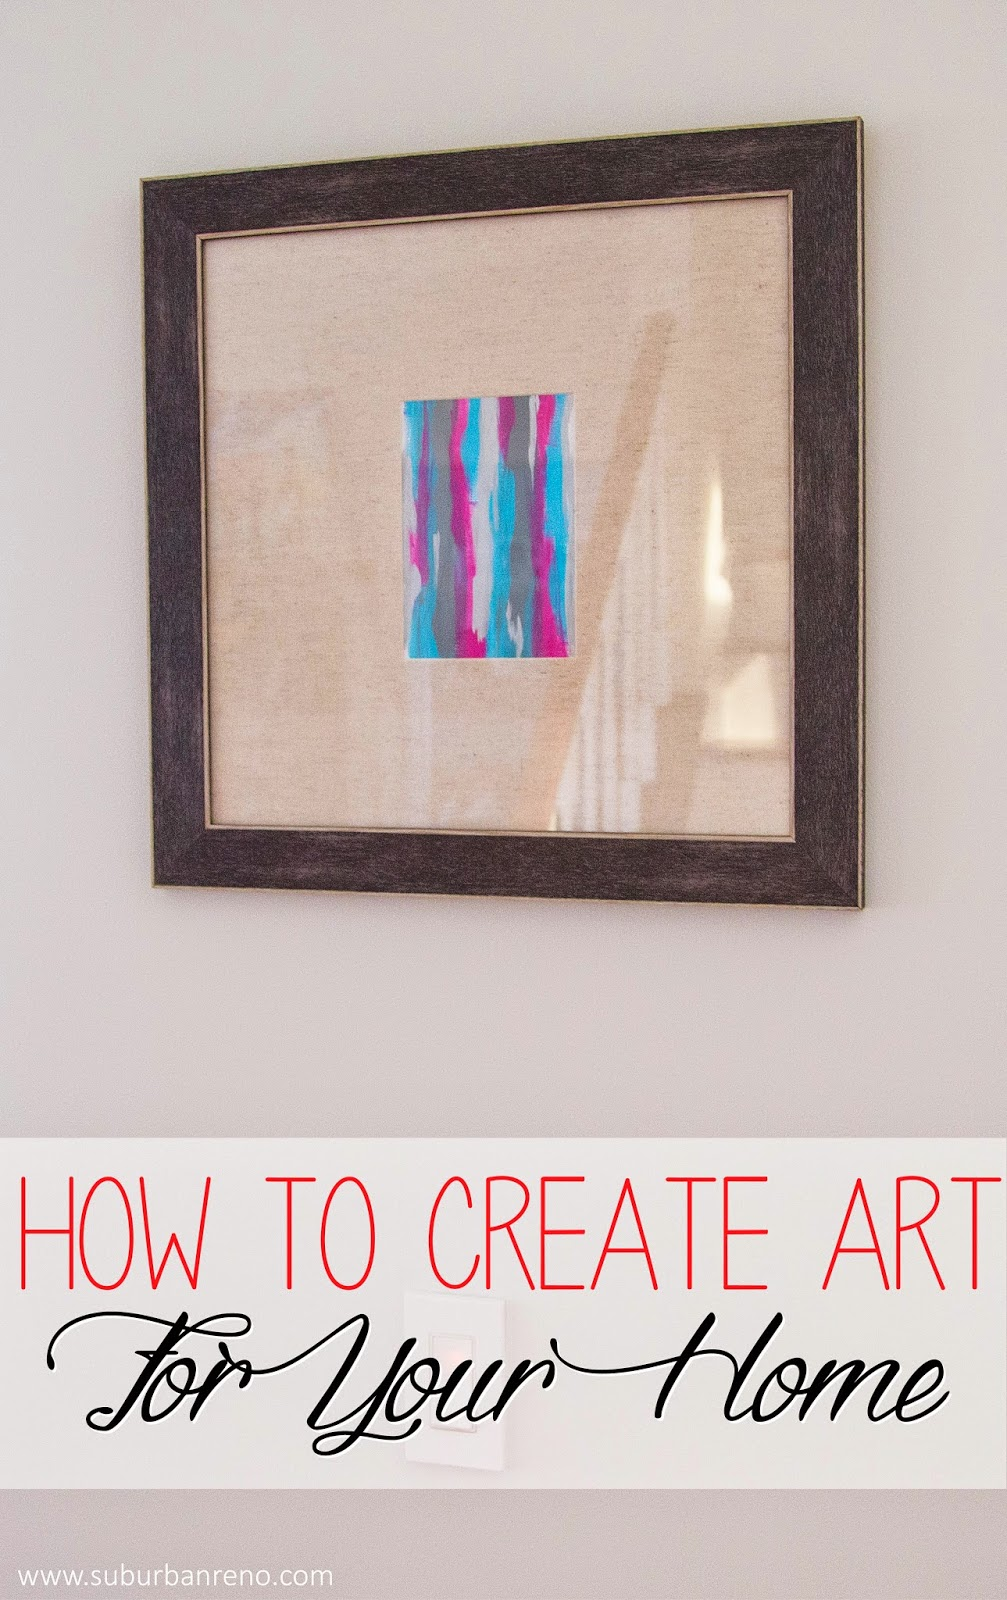 How to Create Art for Your Home